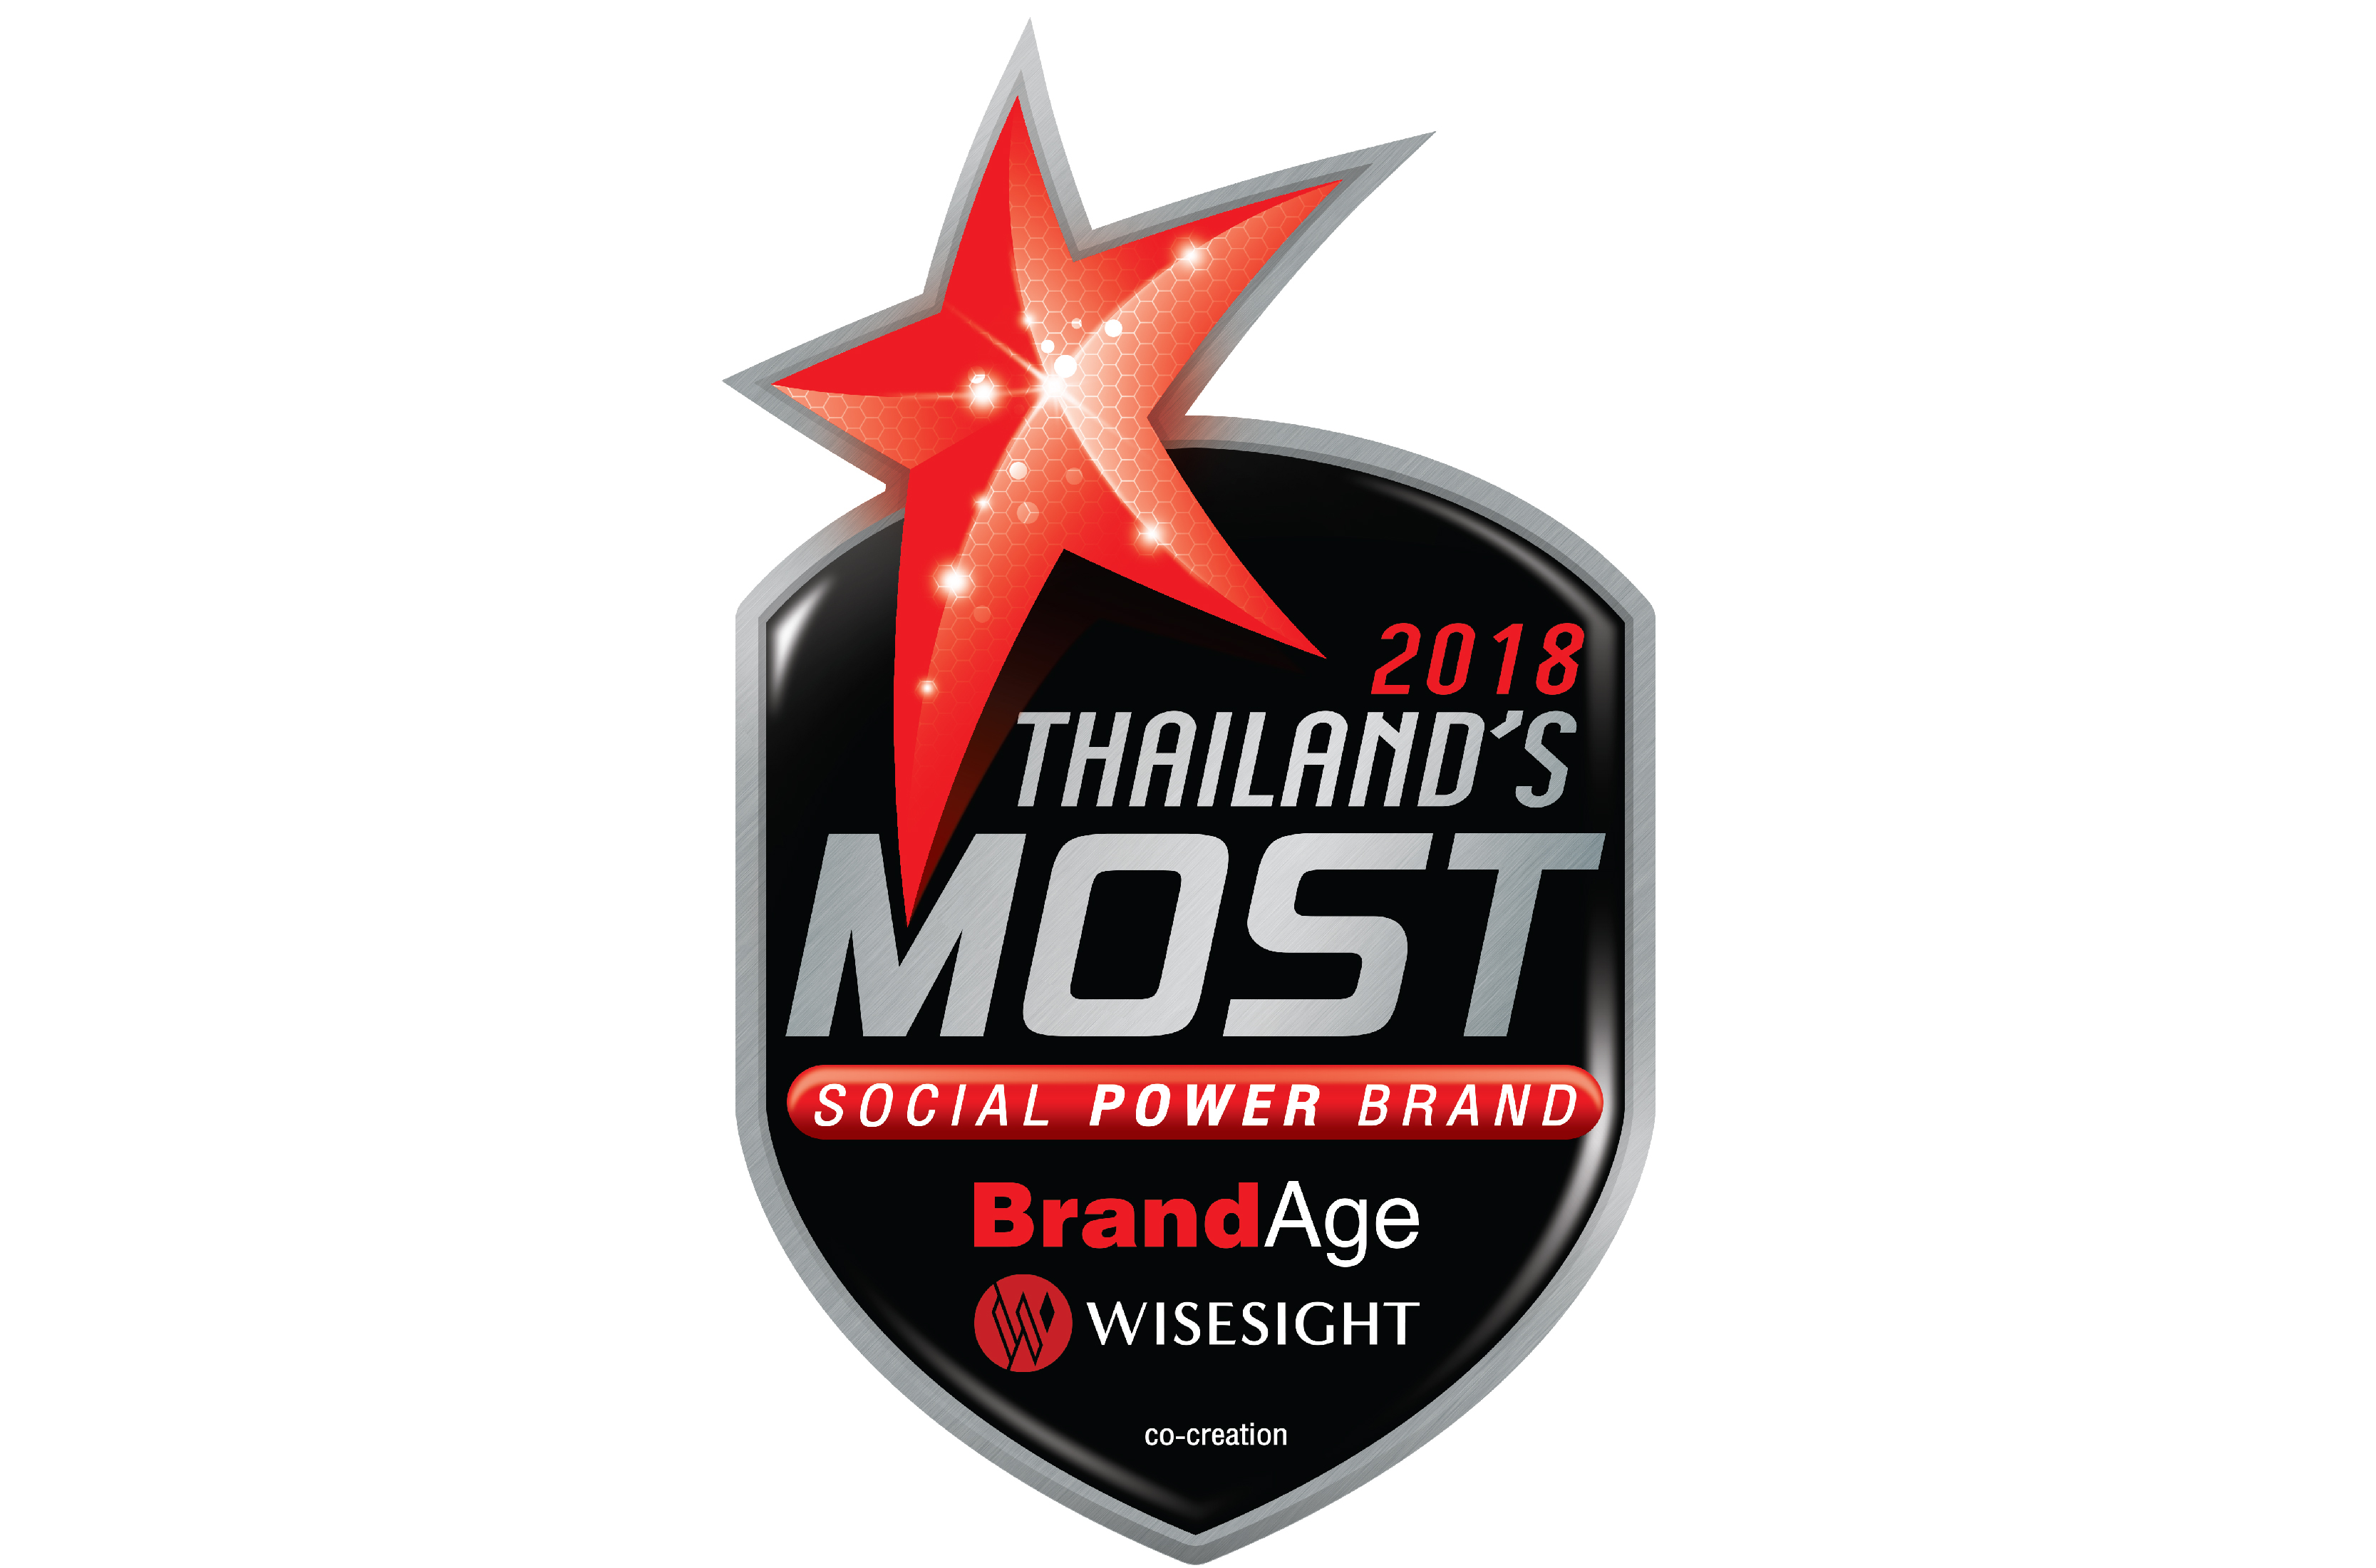 Thailand's Most Social Power Brand 2018